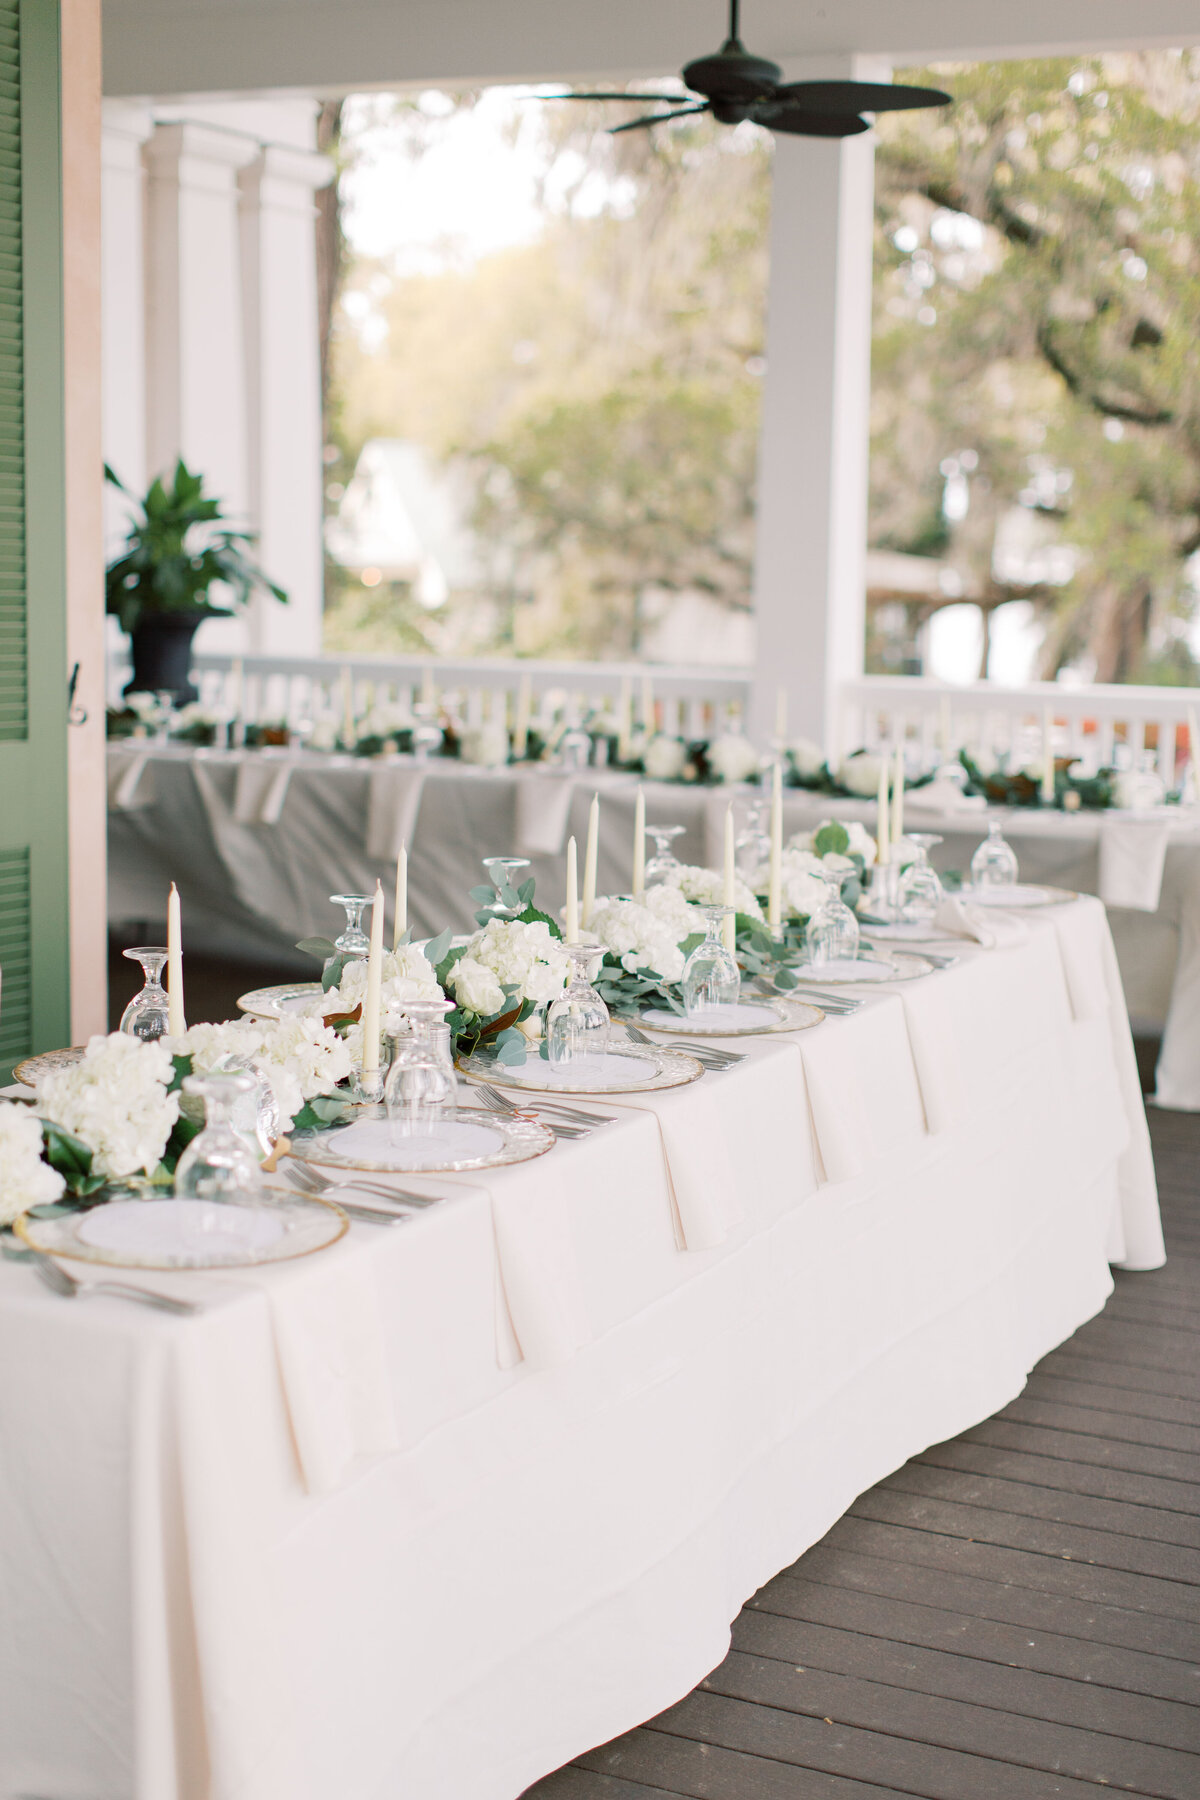 Powell_Oldfield_River_Club_Bluffton_South_Carolina_Beaufort_Savannah_Wedding_Jacksonville_Florida_Devon_Donnahoo_Photography_0381